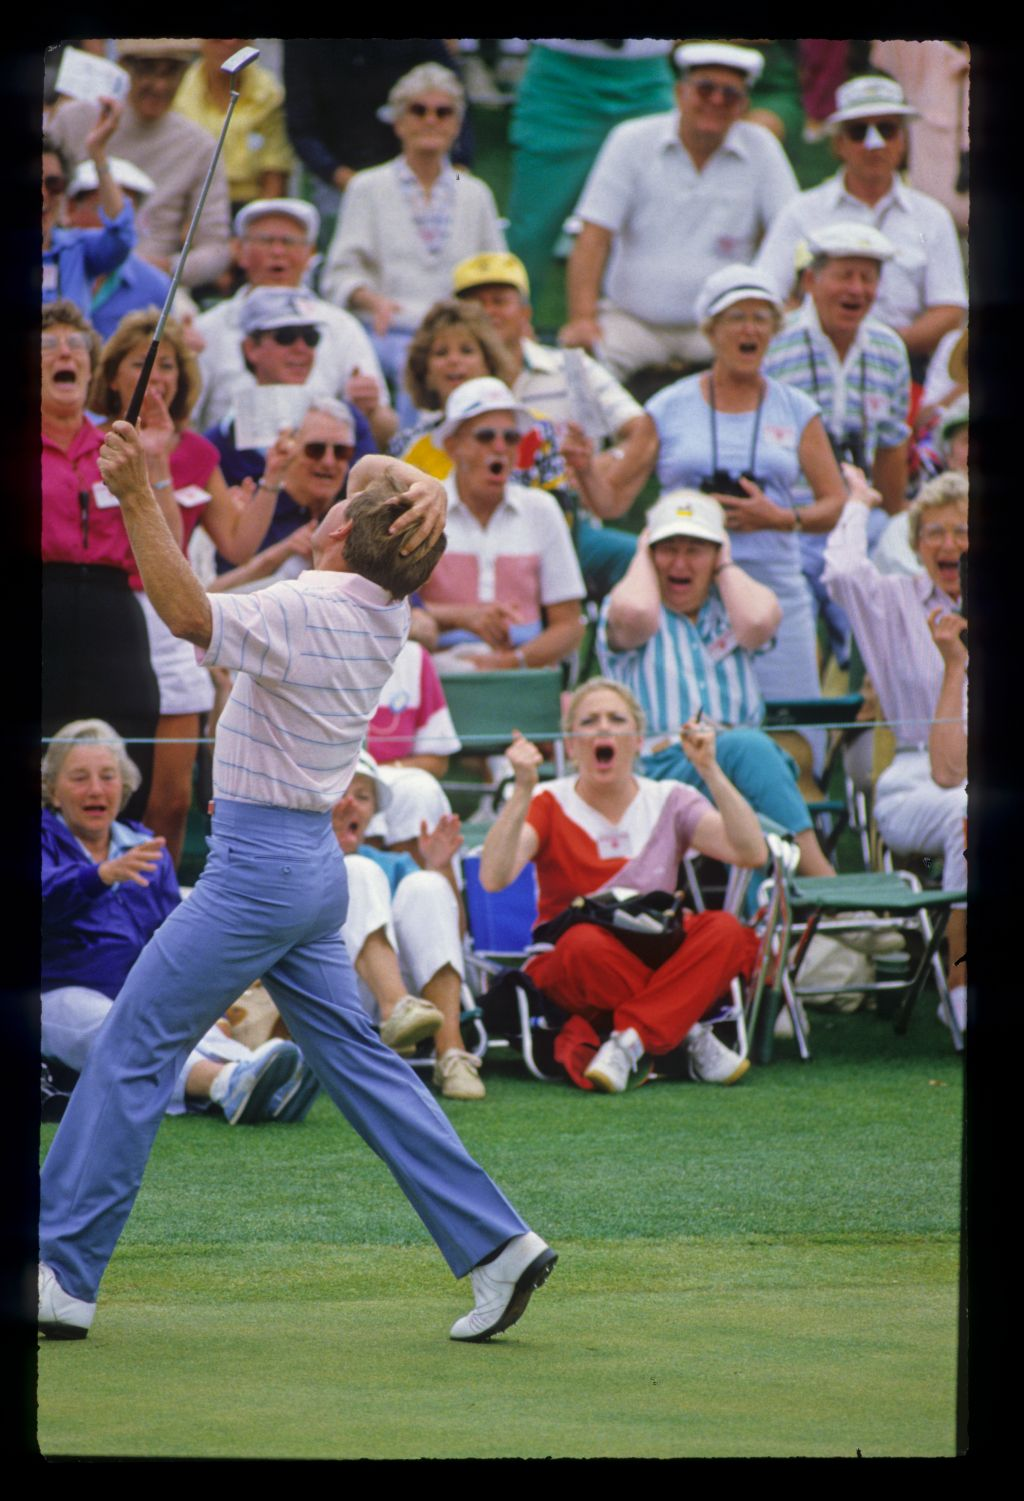 Nick Price and the patrons celebrating a record breaking round of 63 during the 1986 Masters